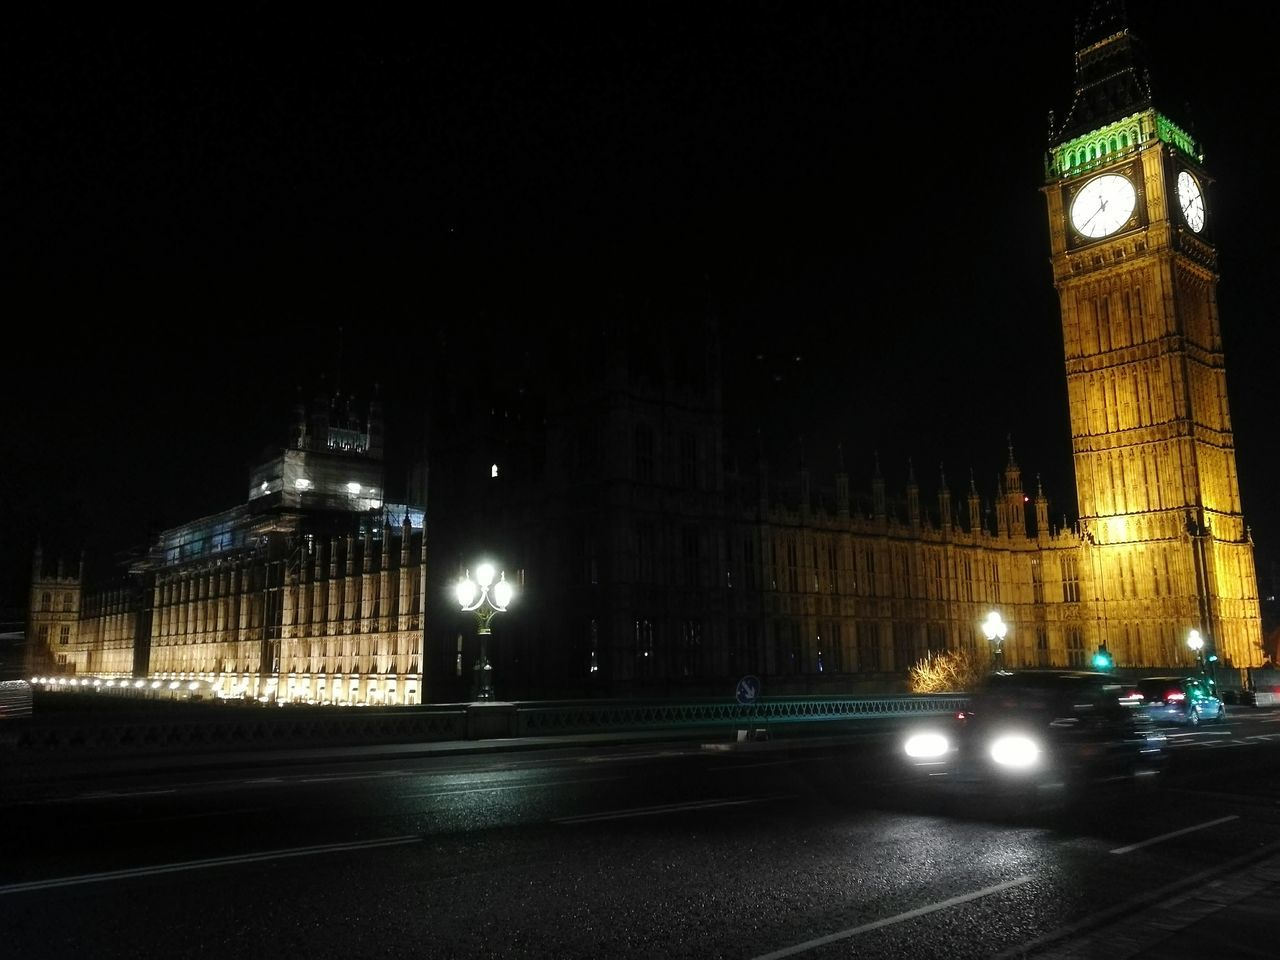 Night Illuminated City Architecture Travel Destinations City Of London Cityscape City Westminster Big Ben Nickandhisthrills